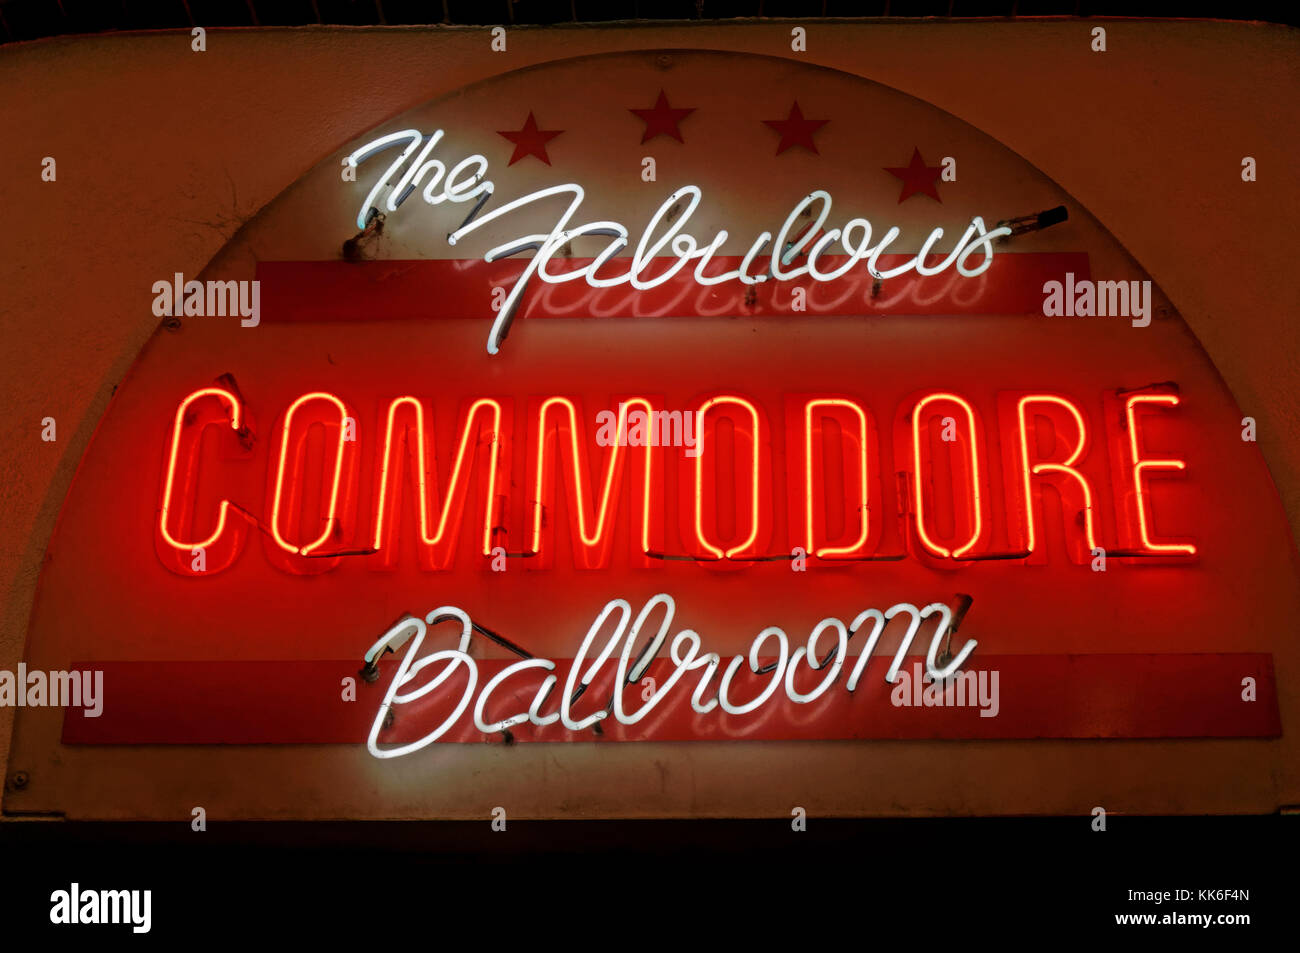 The Commodore Ballroom illuminated neon sign at night, Granville Street, Vancouver, BC, Canada - Stock Image